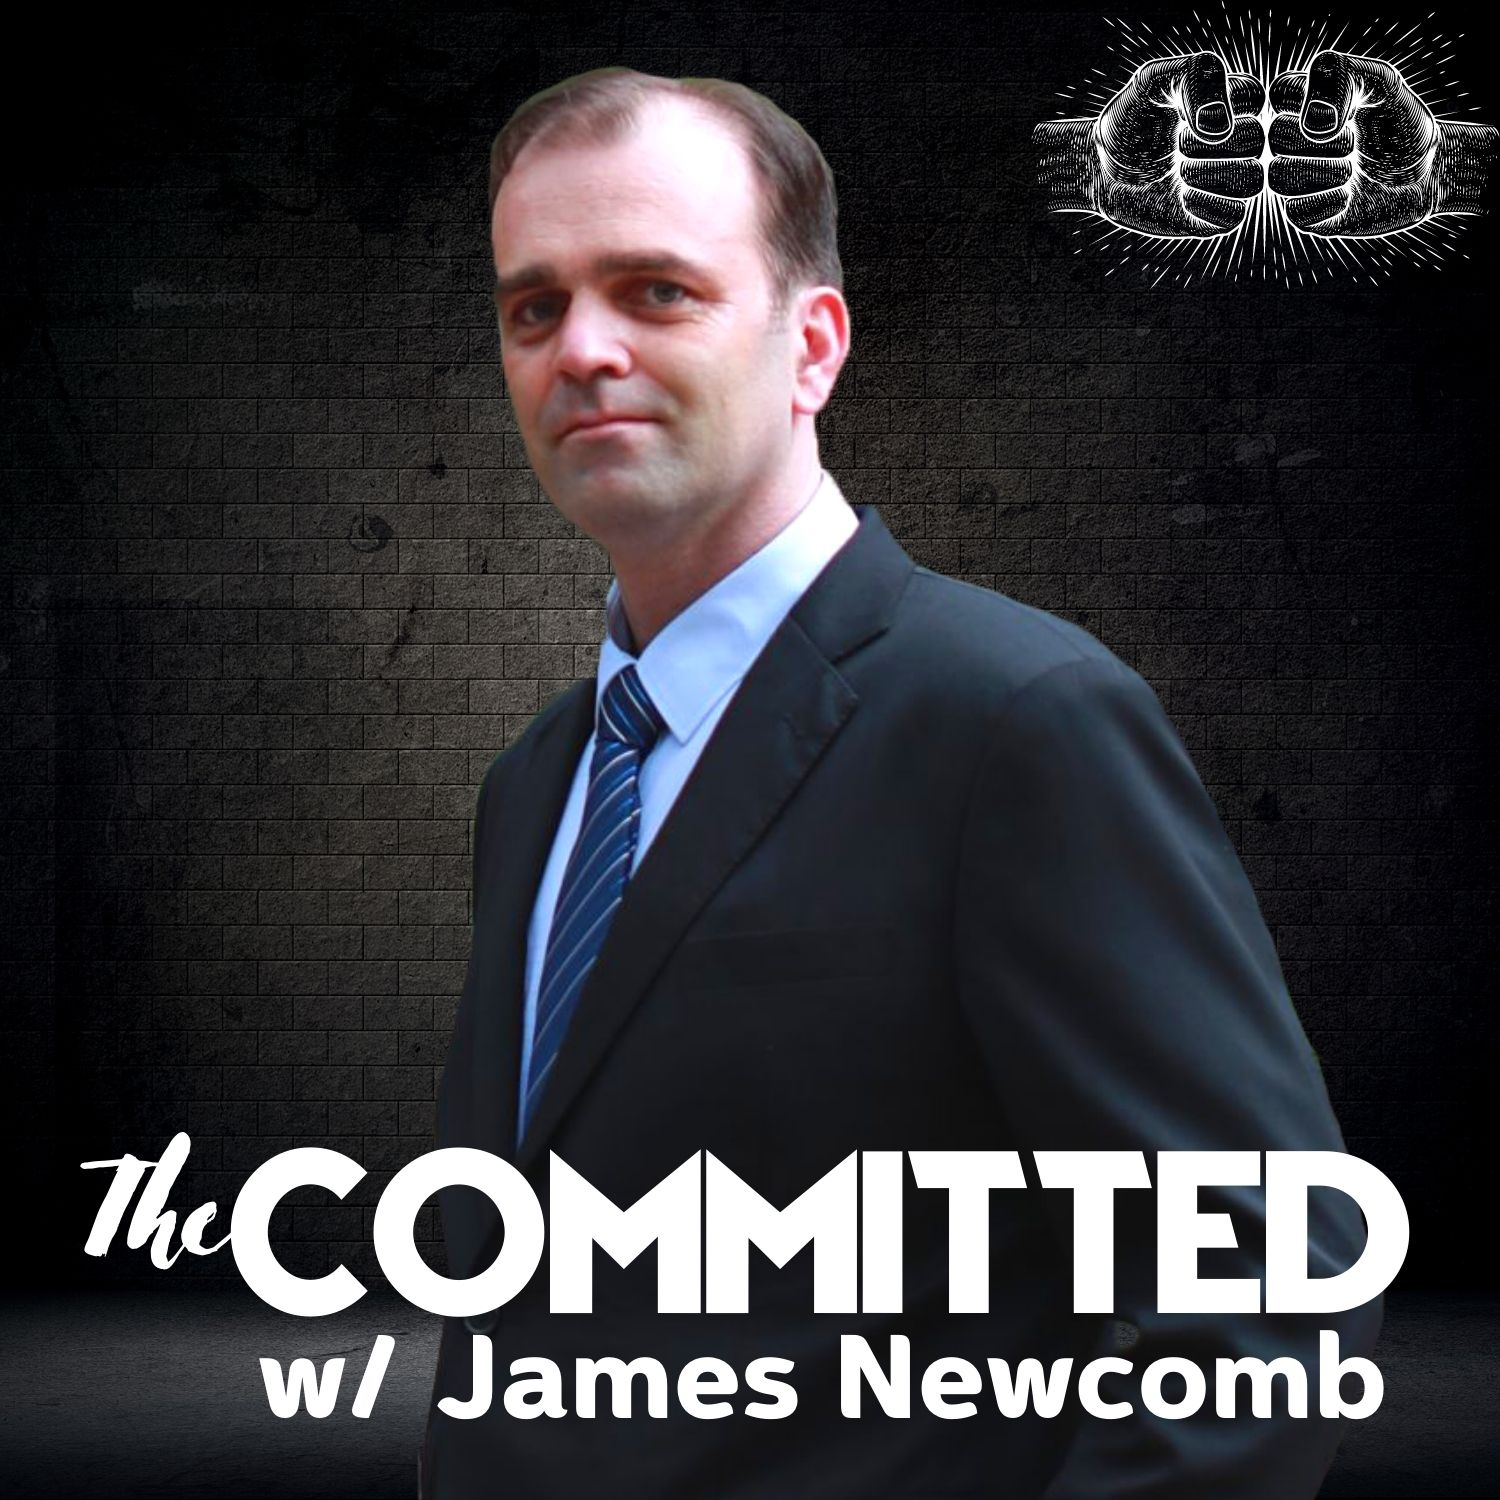 The Committed with James Newcomb